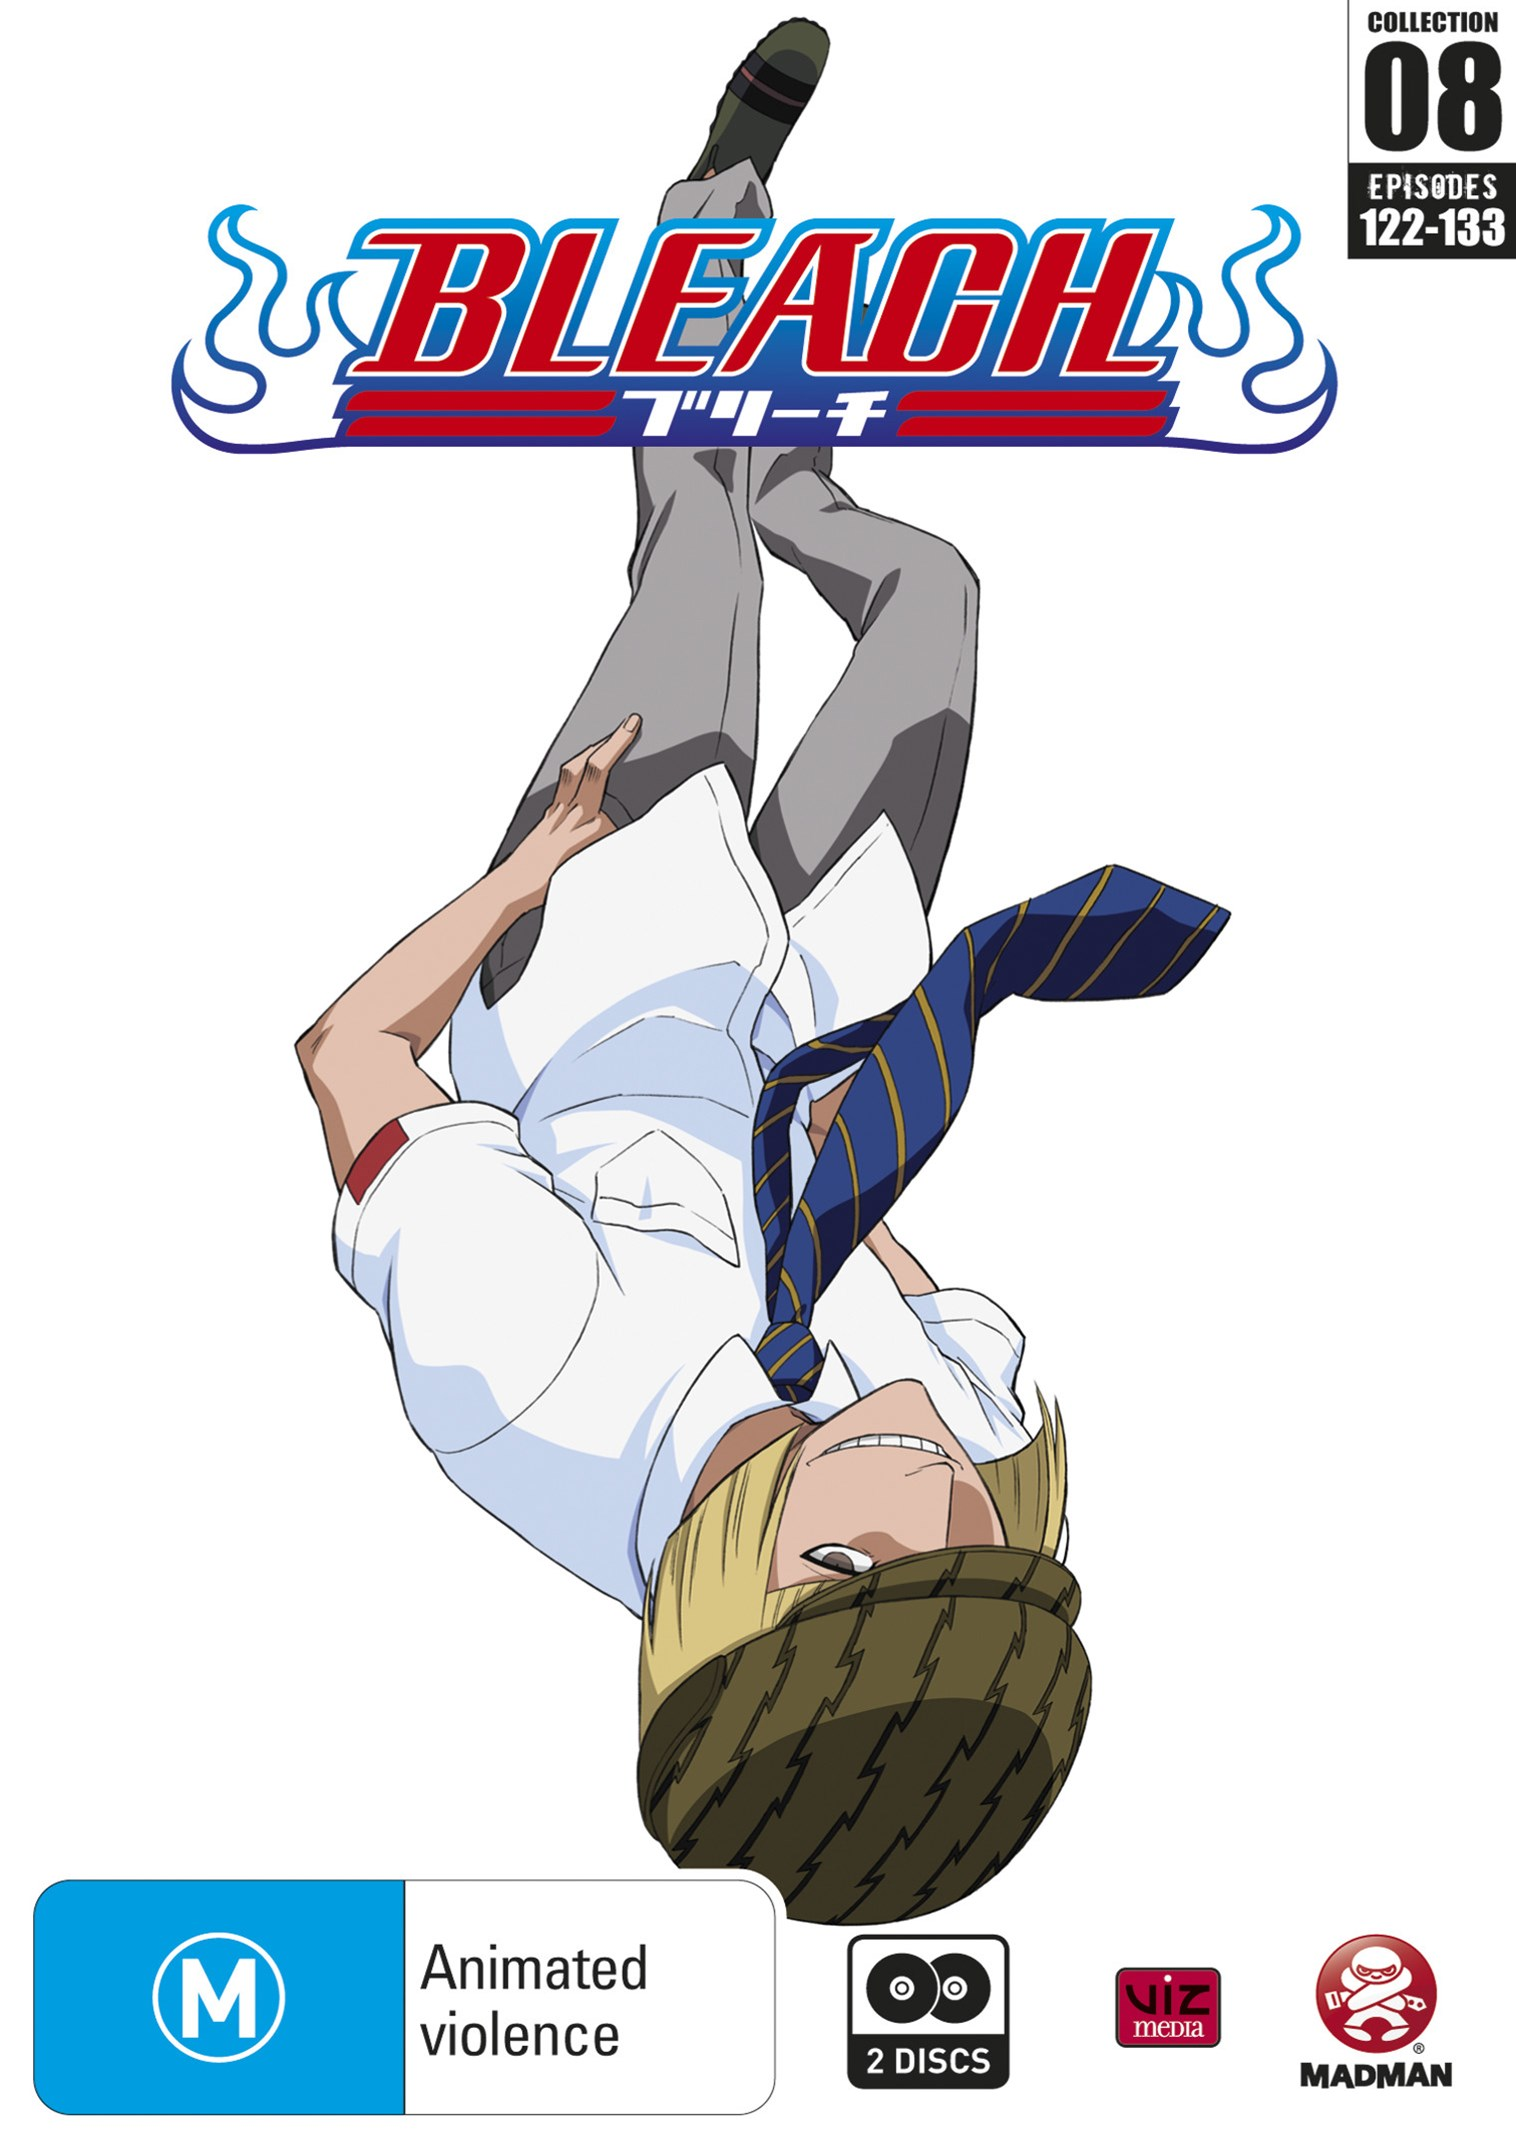 Bleach: Collection 08 - Episodes 122 - 133